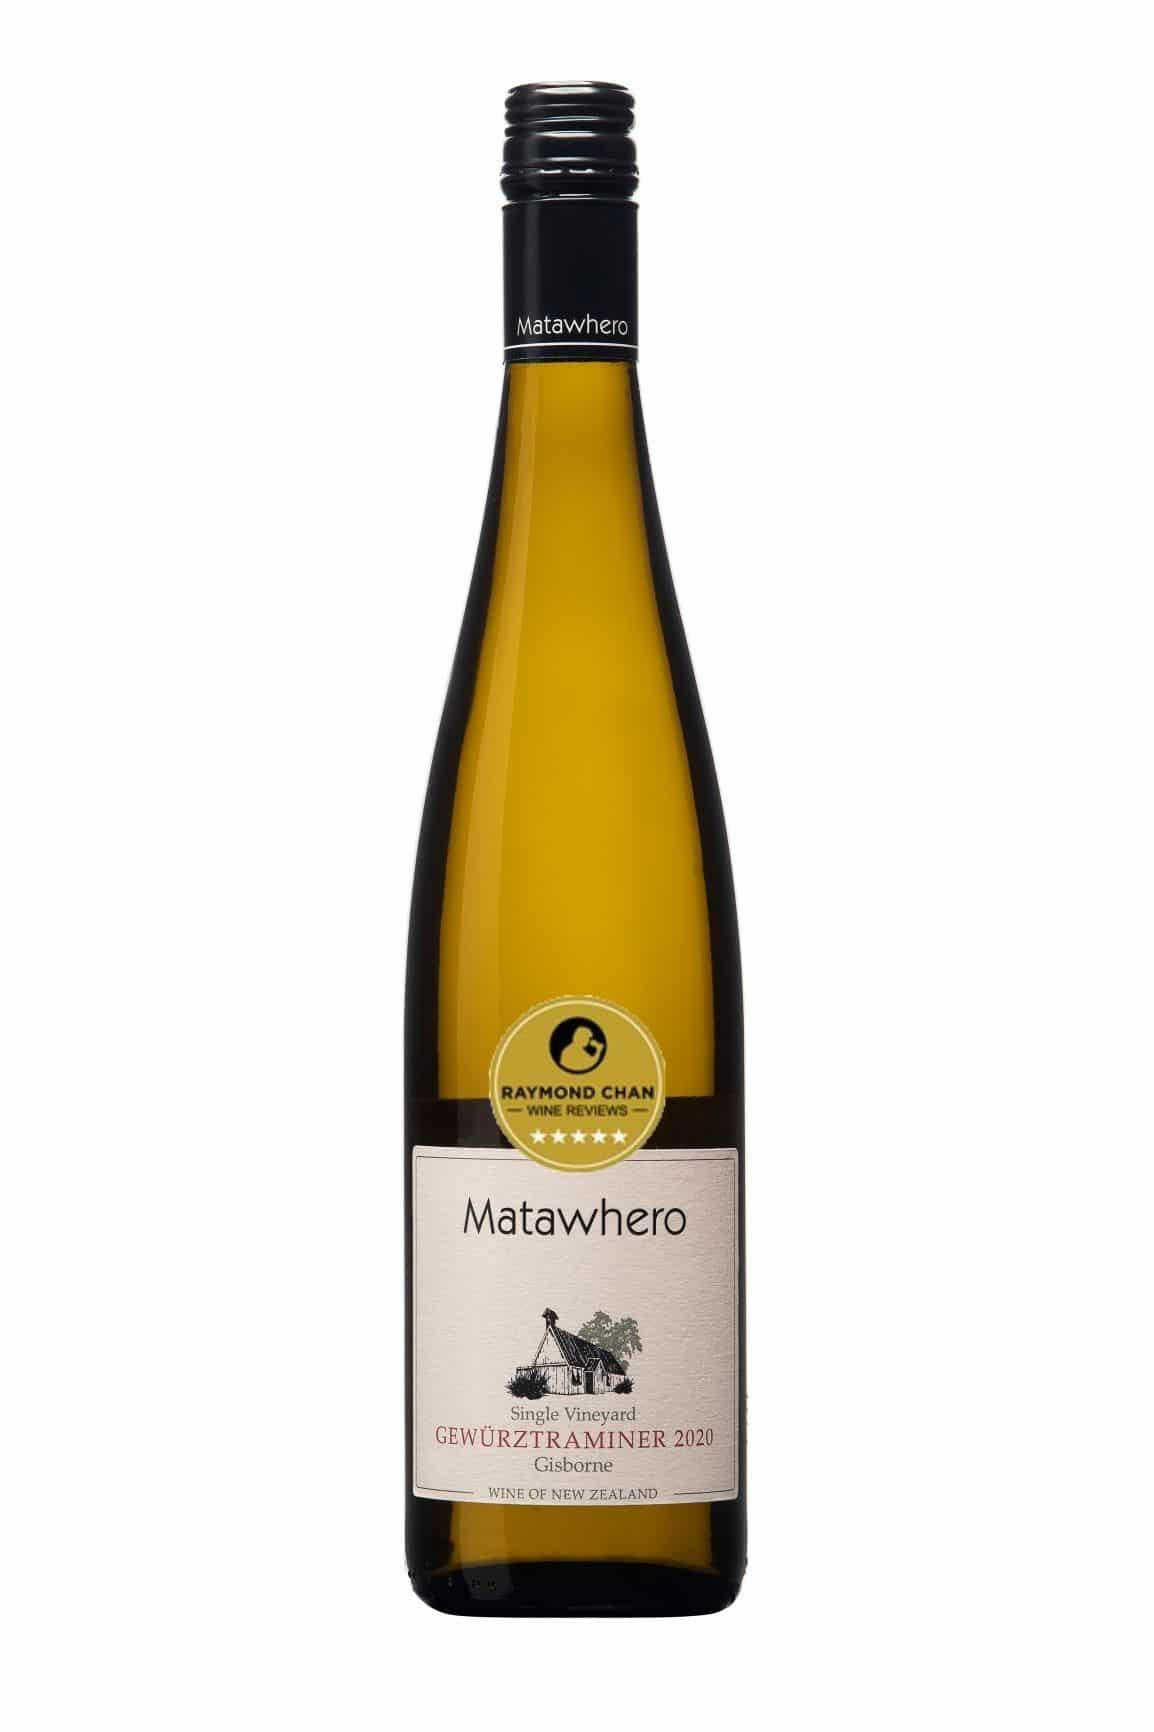 Single vineyard Gewürztraminer 2020